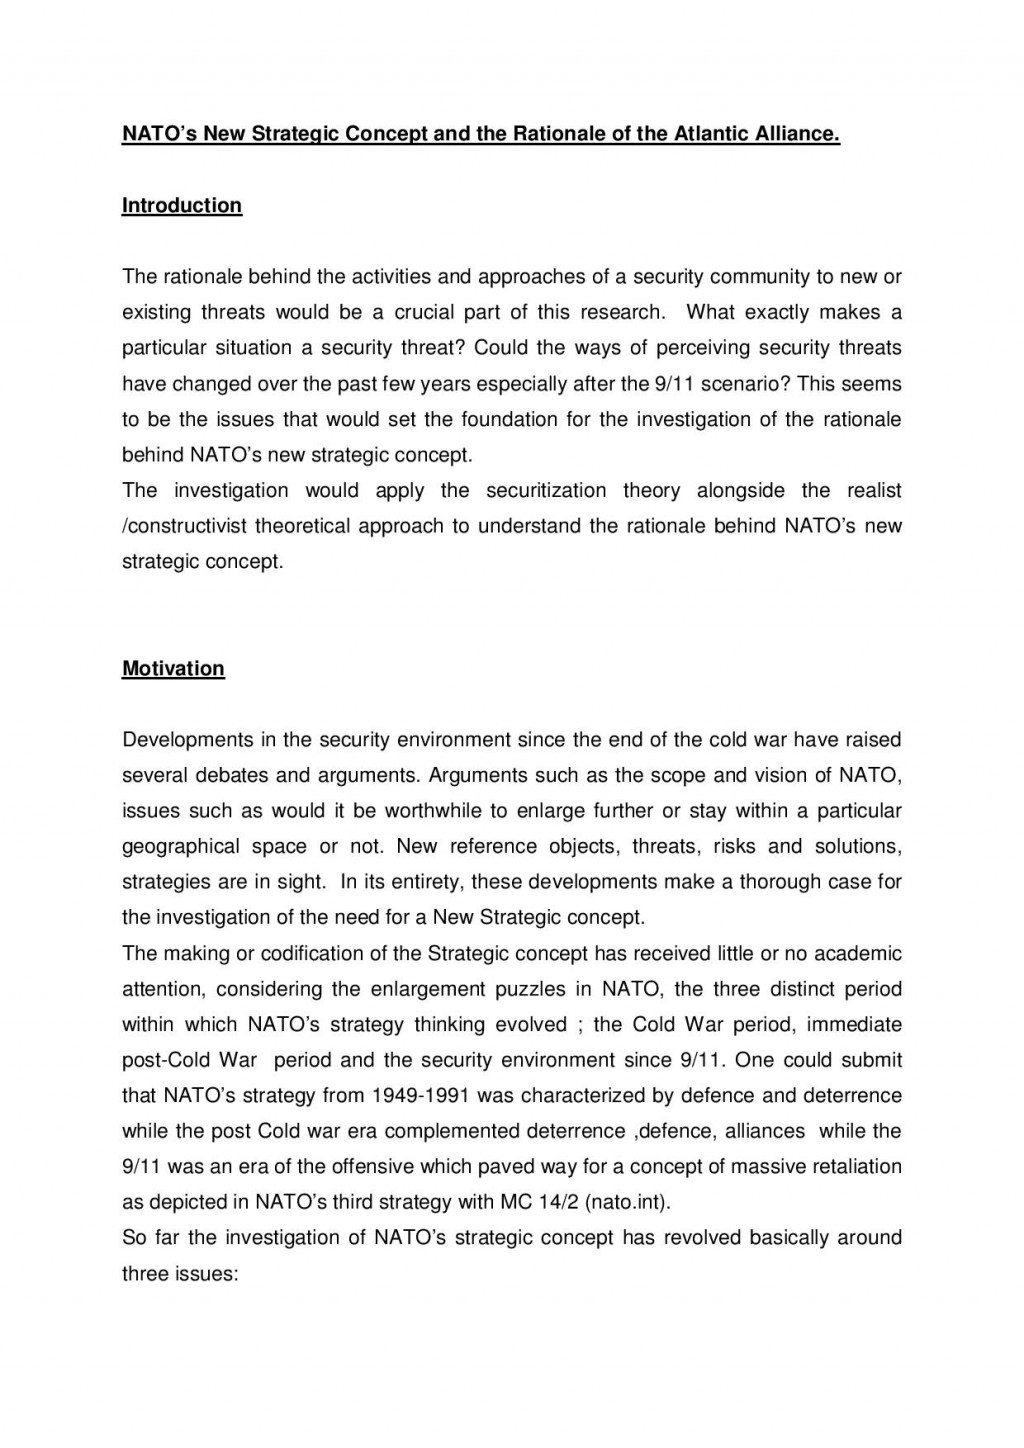 007 Brief Proposal Page How To Write Short For Research Breathtaking A Paper Large